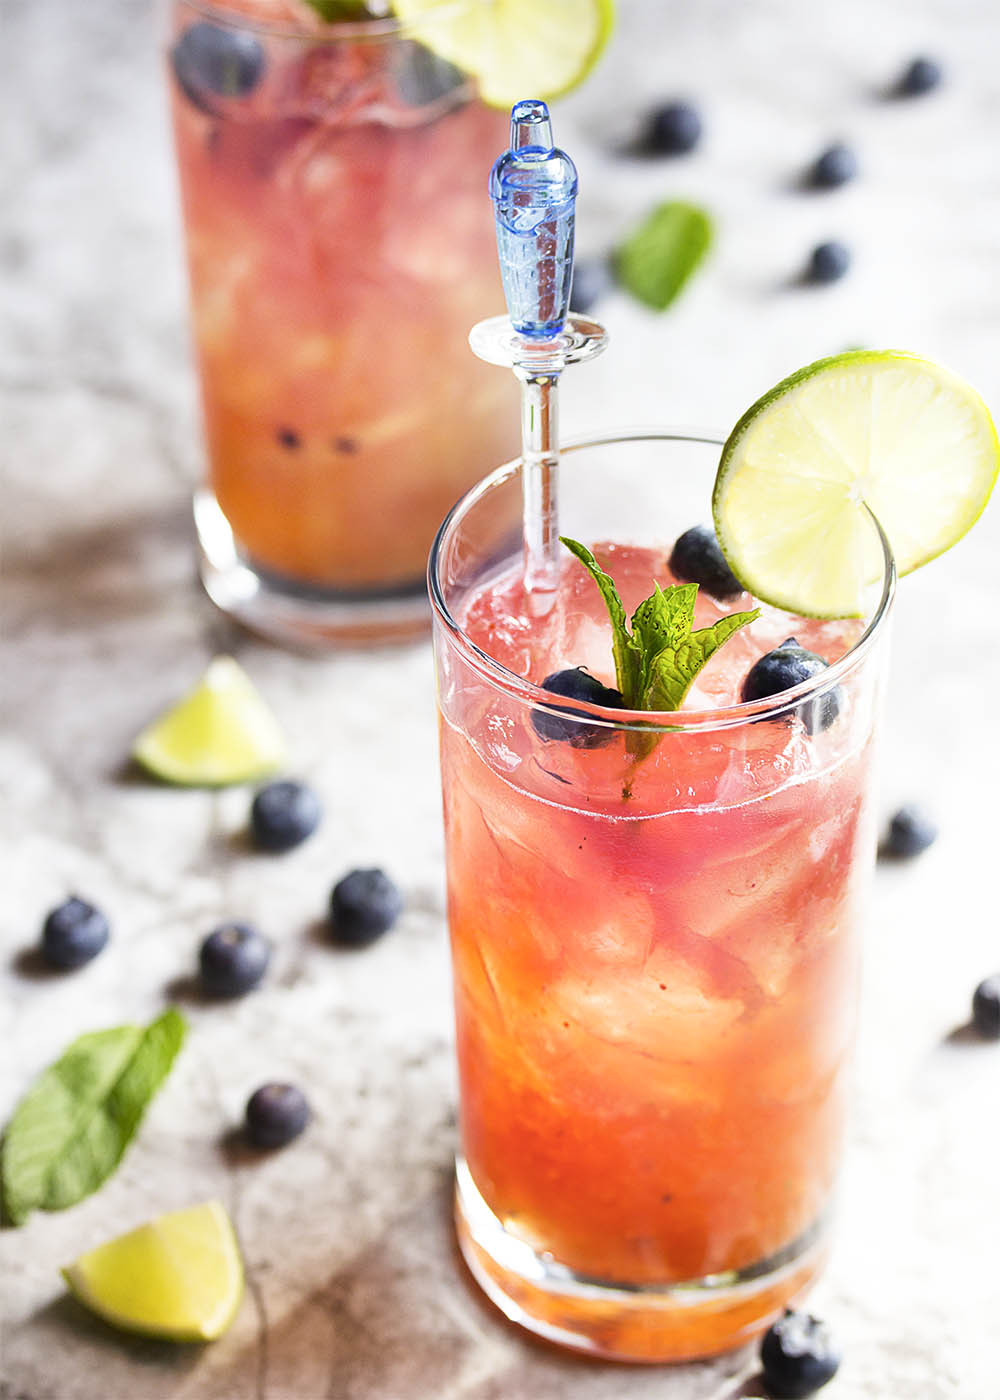 Fresh Blueberry Mojito - This blueberry mojito is full of fresh blueberry and mint flavor, and is an easy and refreshing summer drink perfect for sipping out of a straw. Great for cookouts or a warm evening on your deck! | justalittlebitofbacon.com